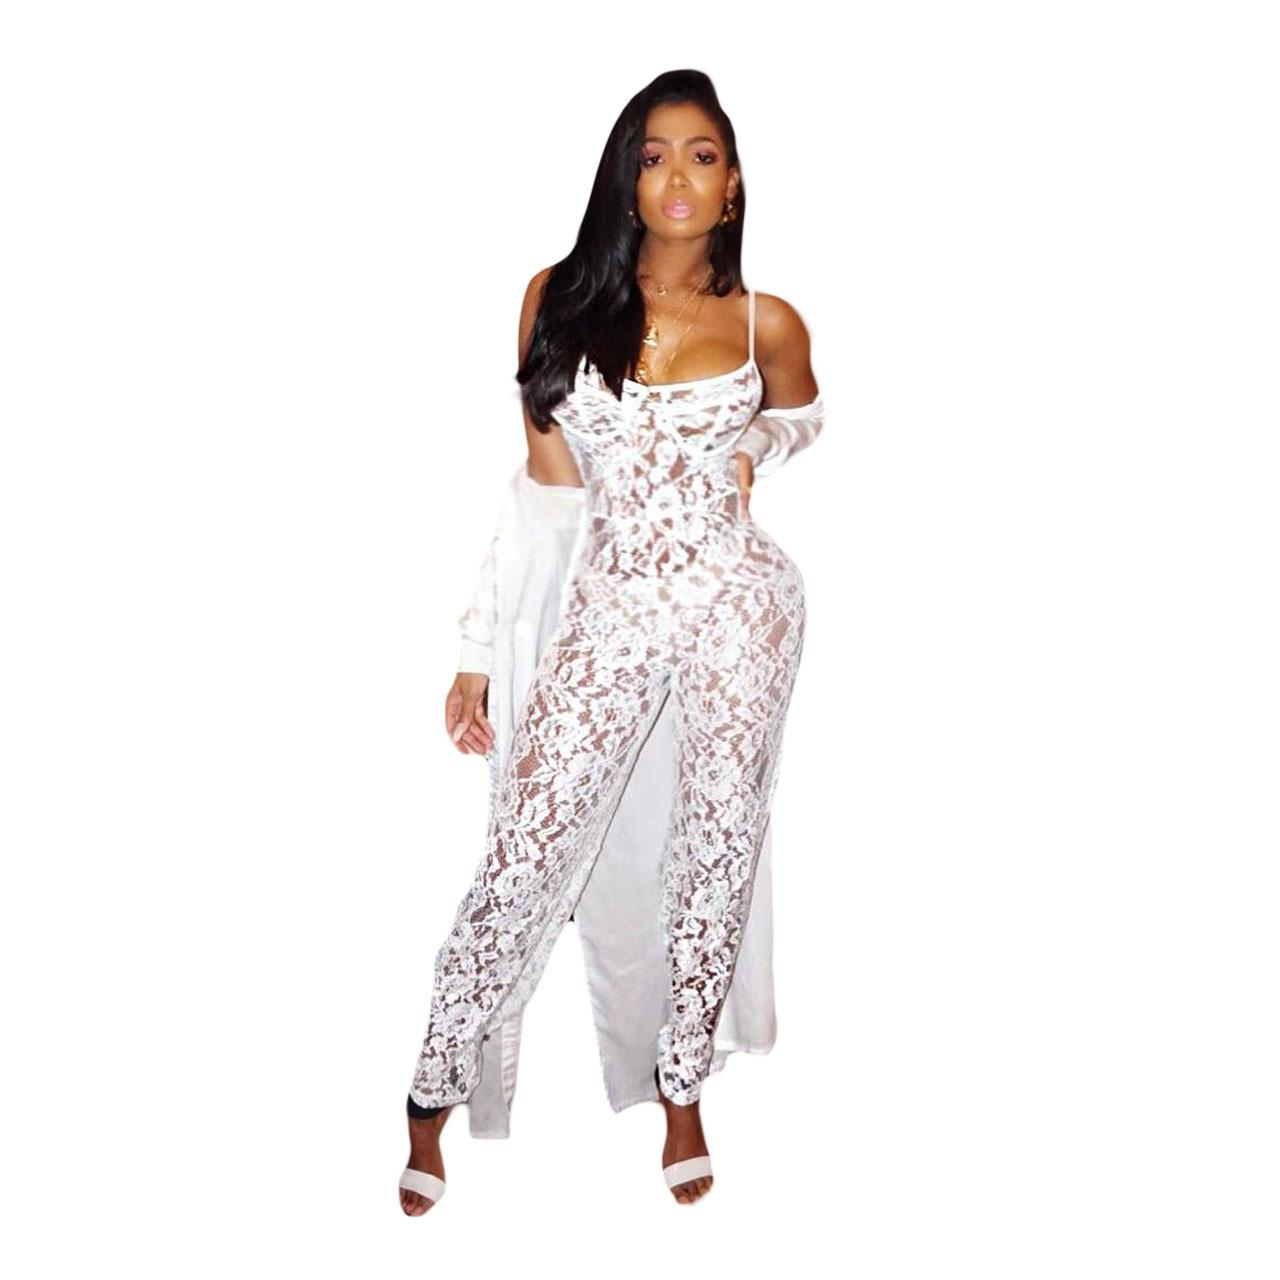 2019 Summer White Lace Jumpsuit Women Strap See Through Bodysuit Sexy Romper  Sheer Bodycon Rompers Womens Jumpsuit Club Party Outfits From Blueberry16 83821e18cd2d